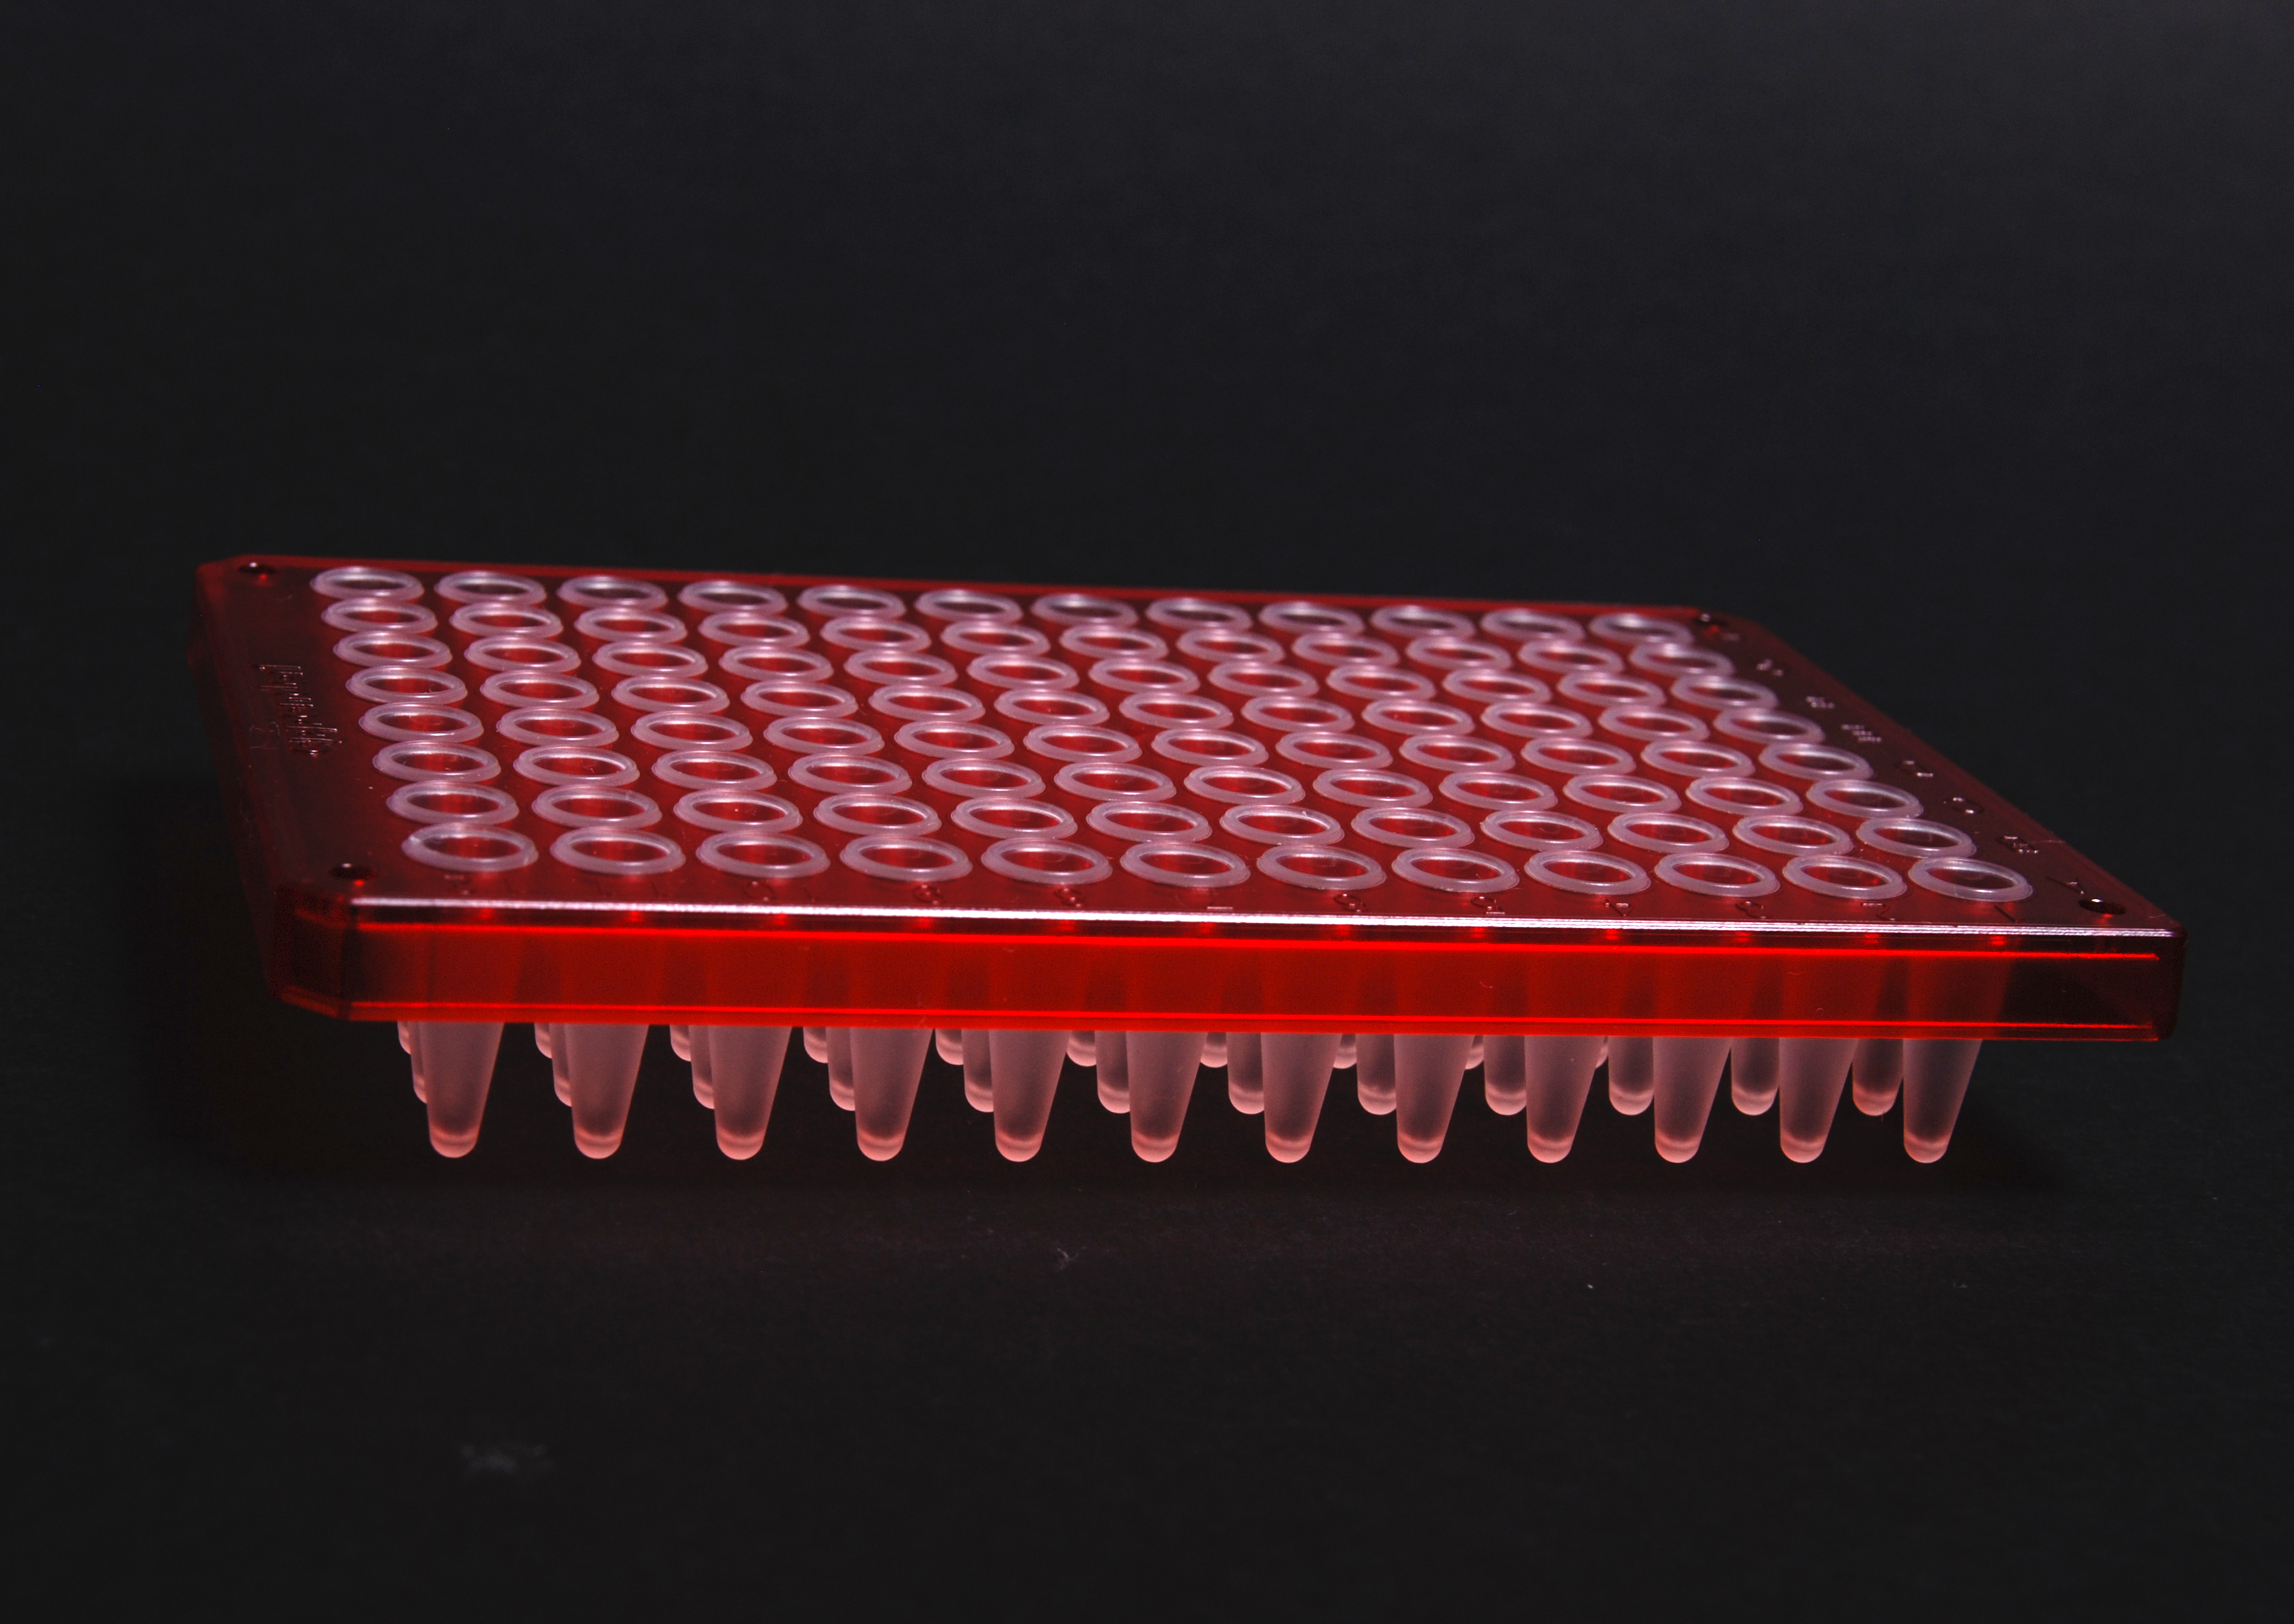 File:96 well PCR plate-07.jpg - Wikimedia Commons